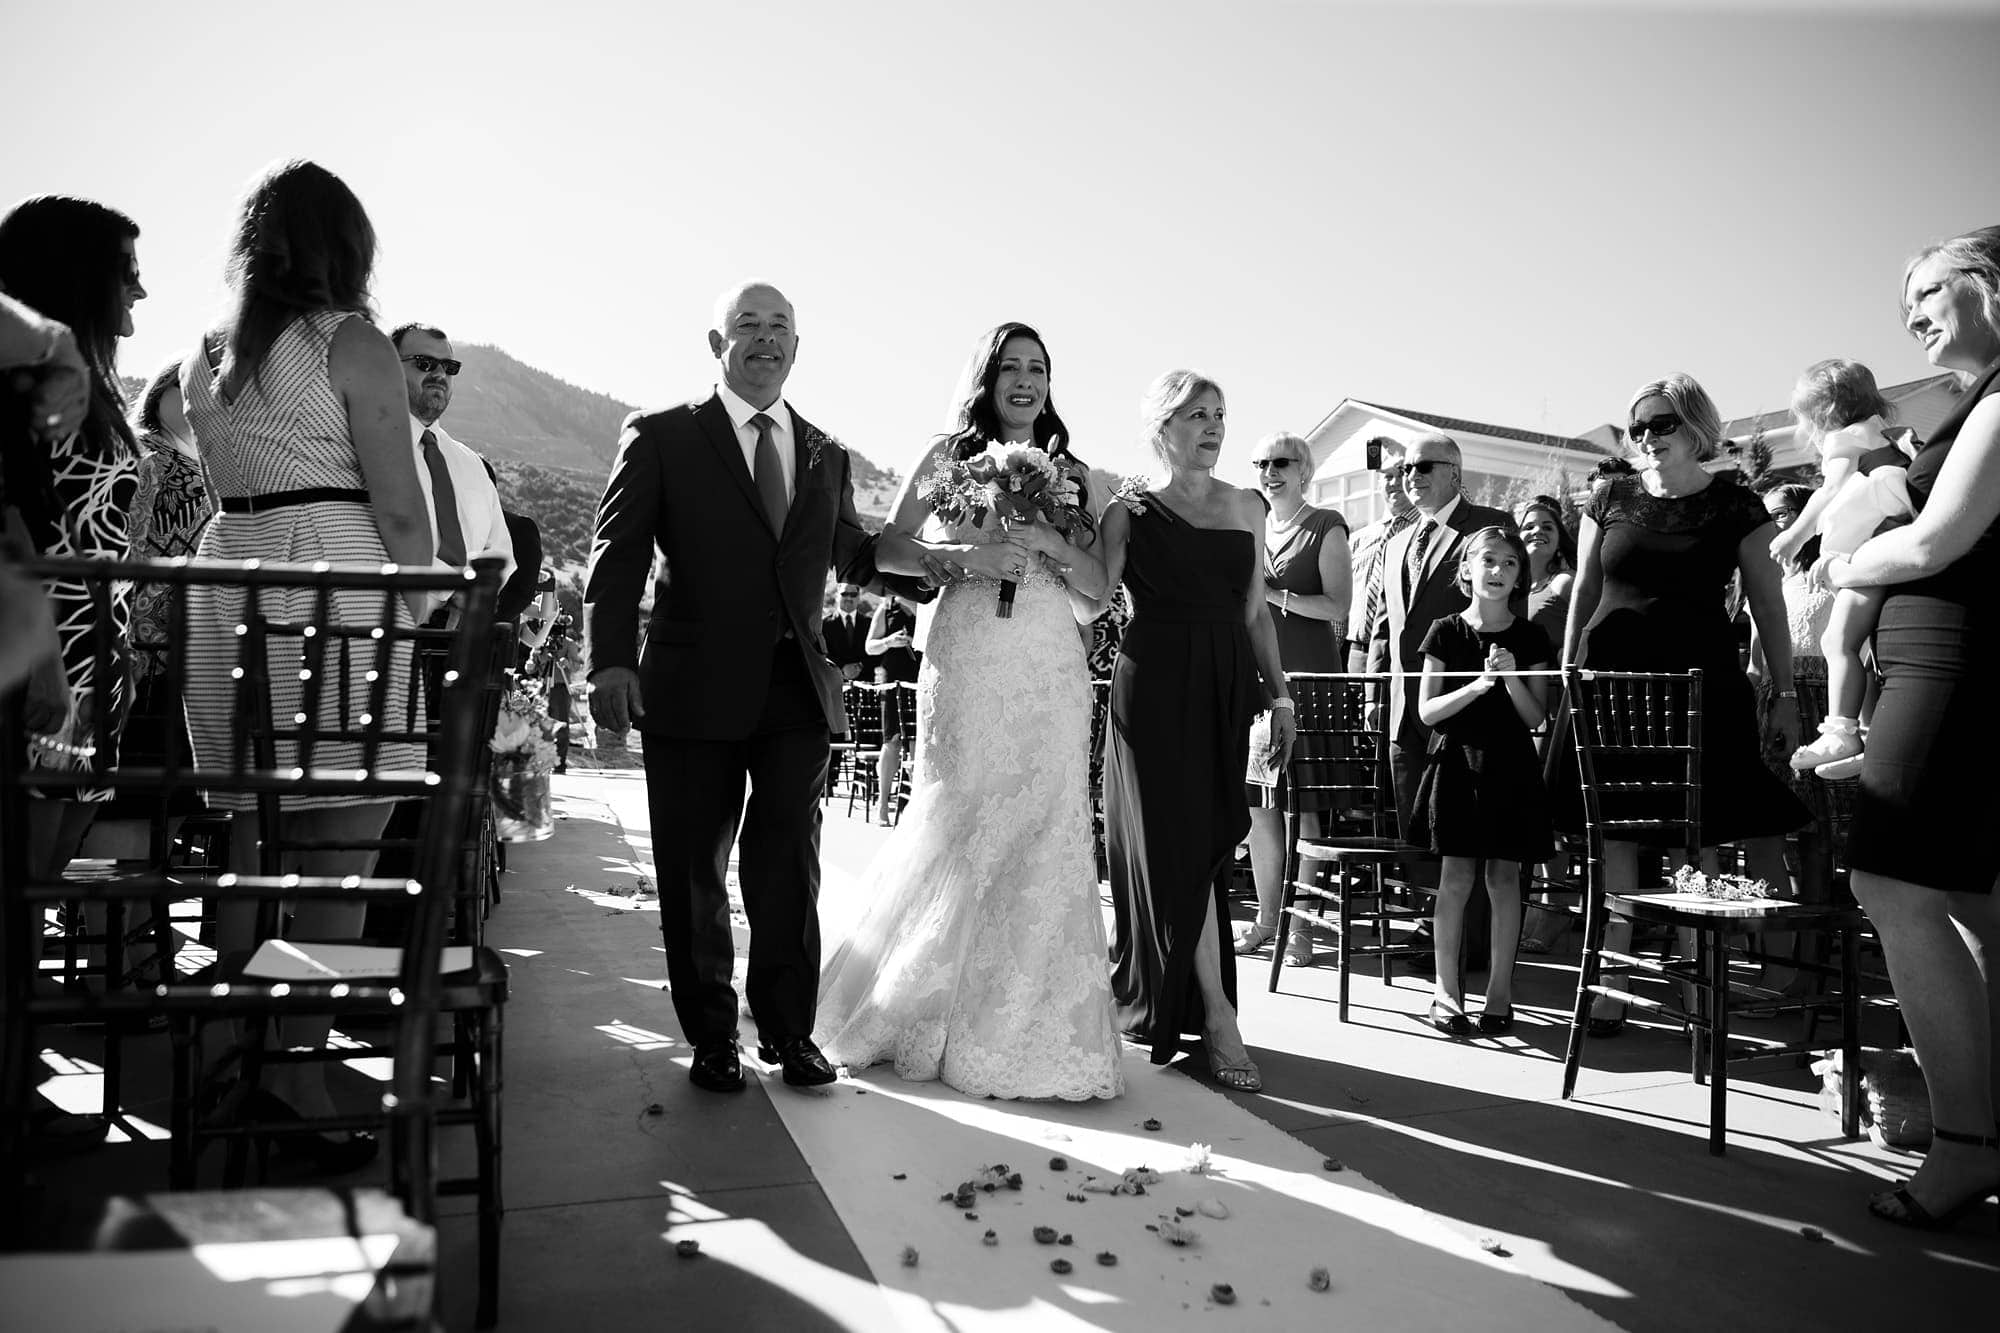 Gina cries as she walks down the aisle during her Willow Ridge Manor wedding